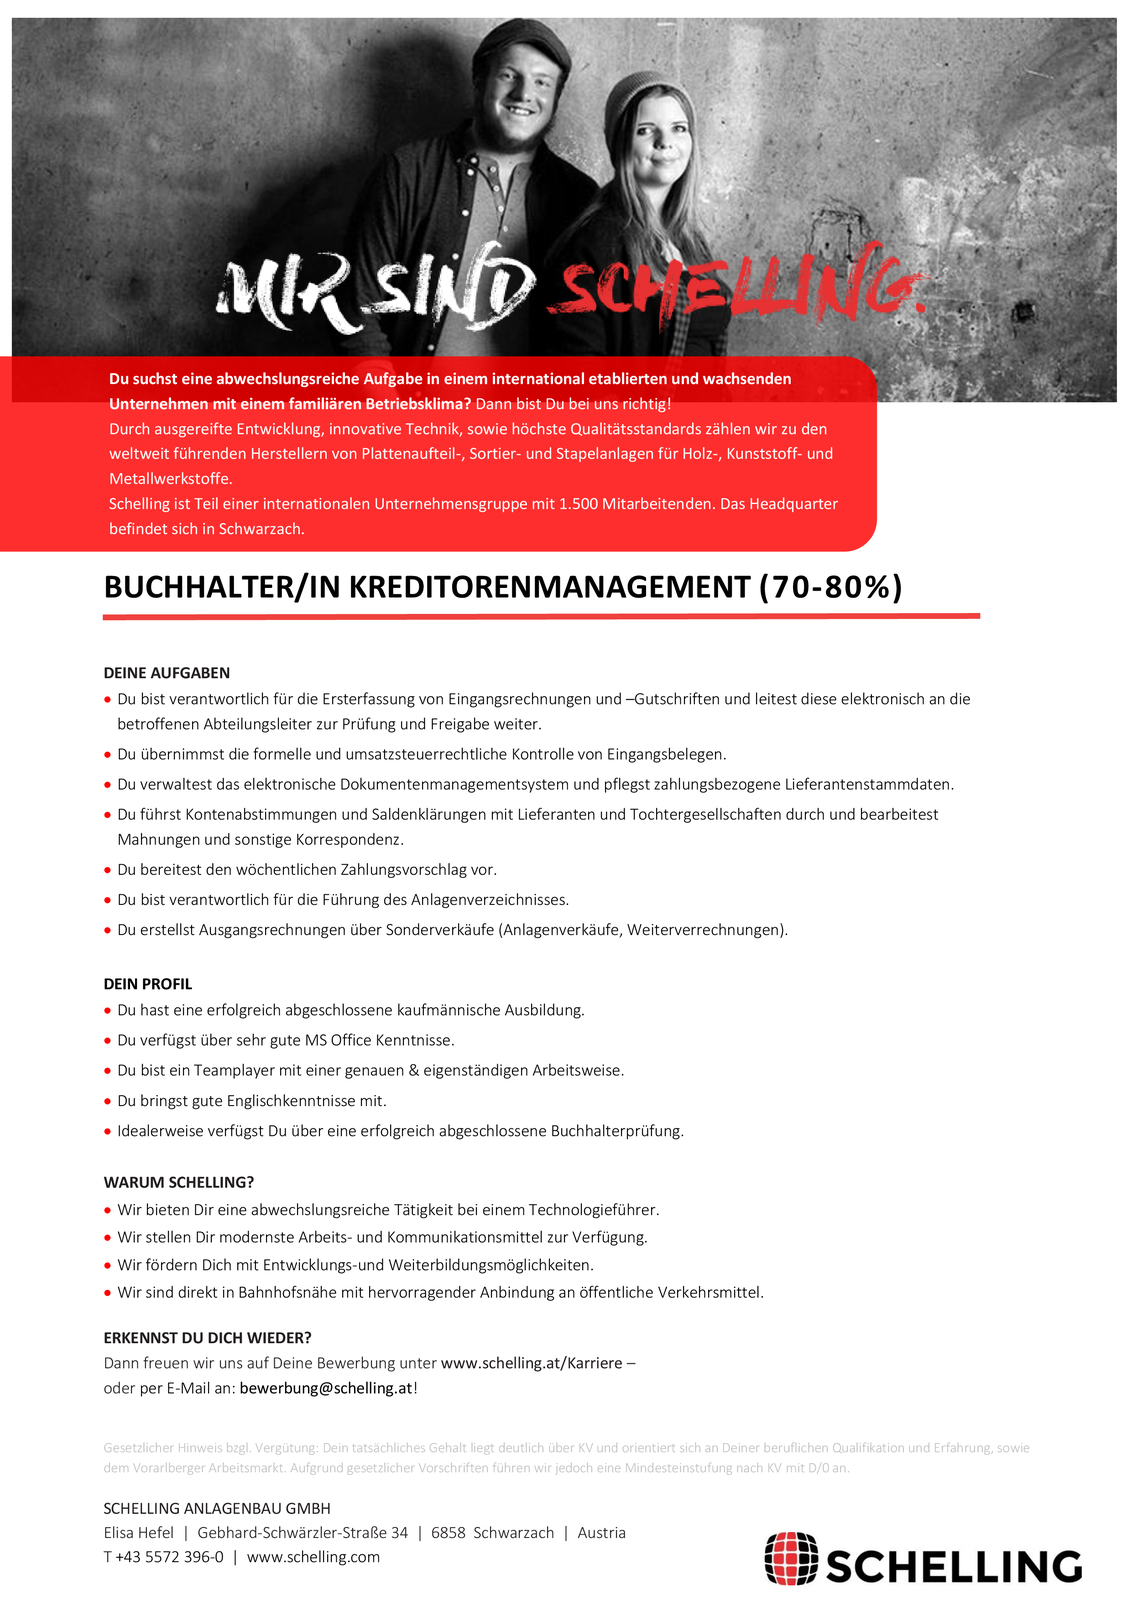 Buchhalter/In Kreditorenmanagement (70-80%)